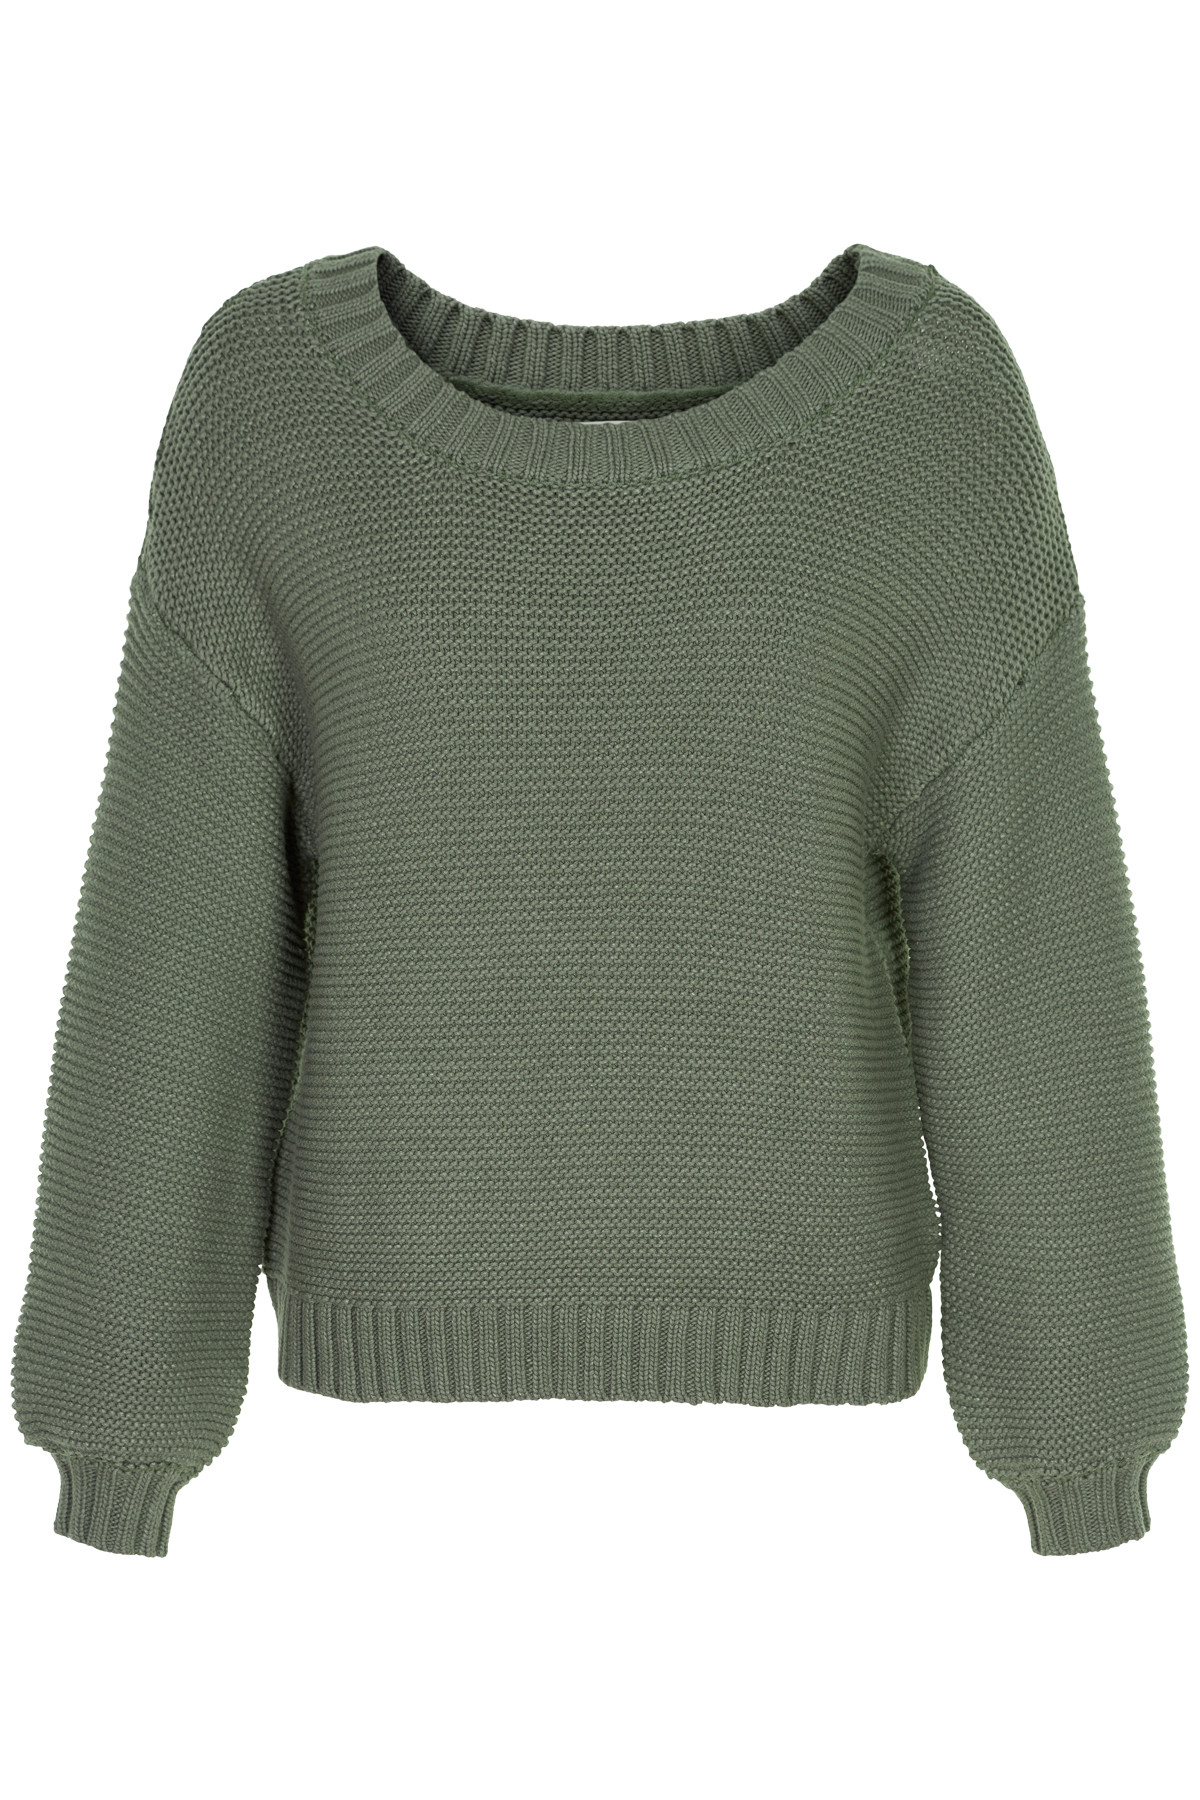 Image of   AND LESS RAIMONDO PULLOVER 5219206 (Castor Green, S)